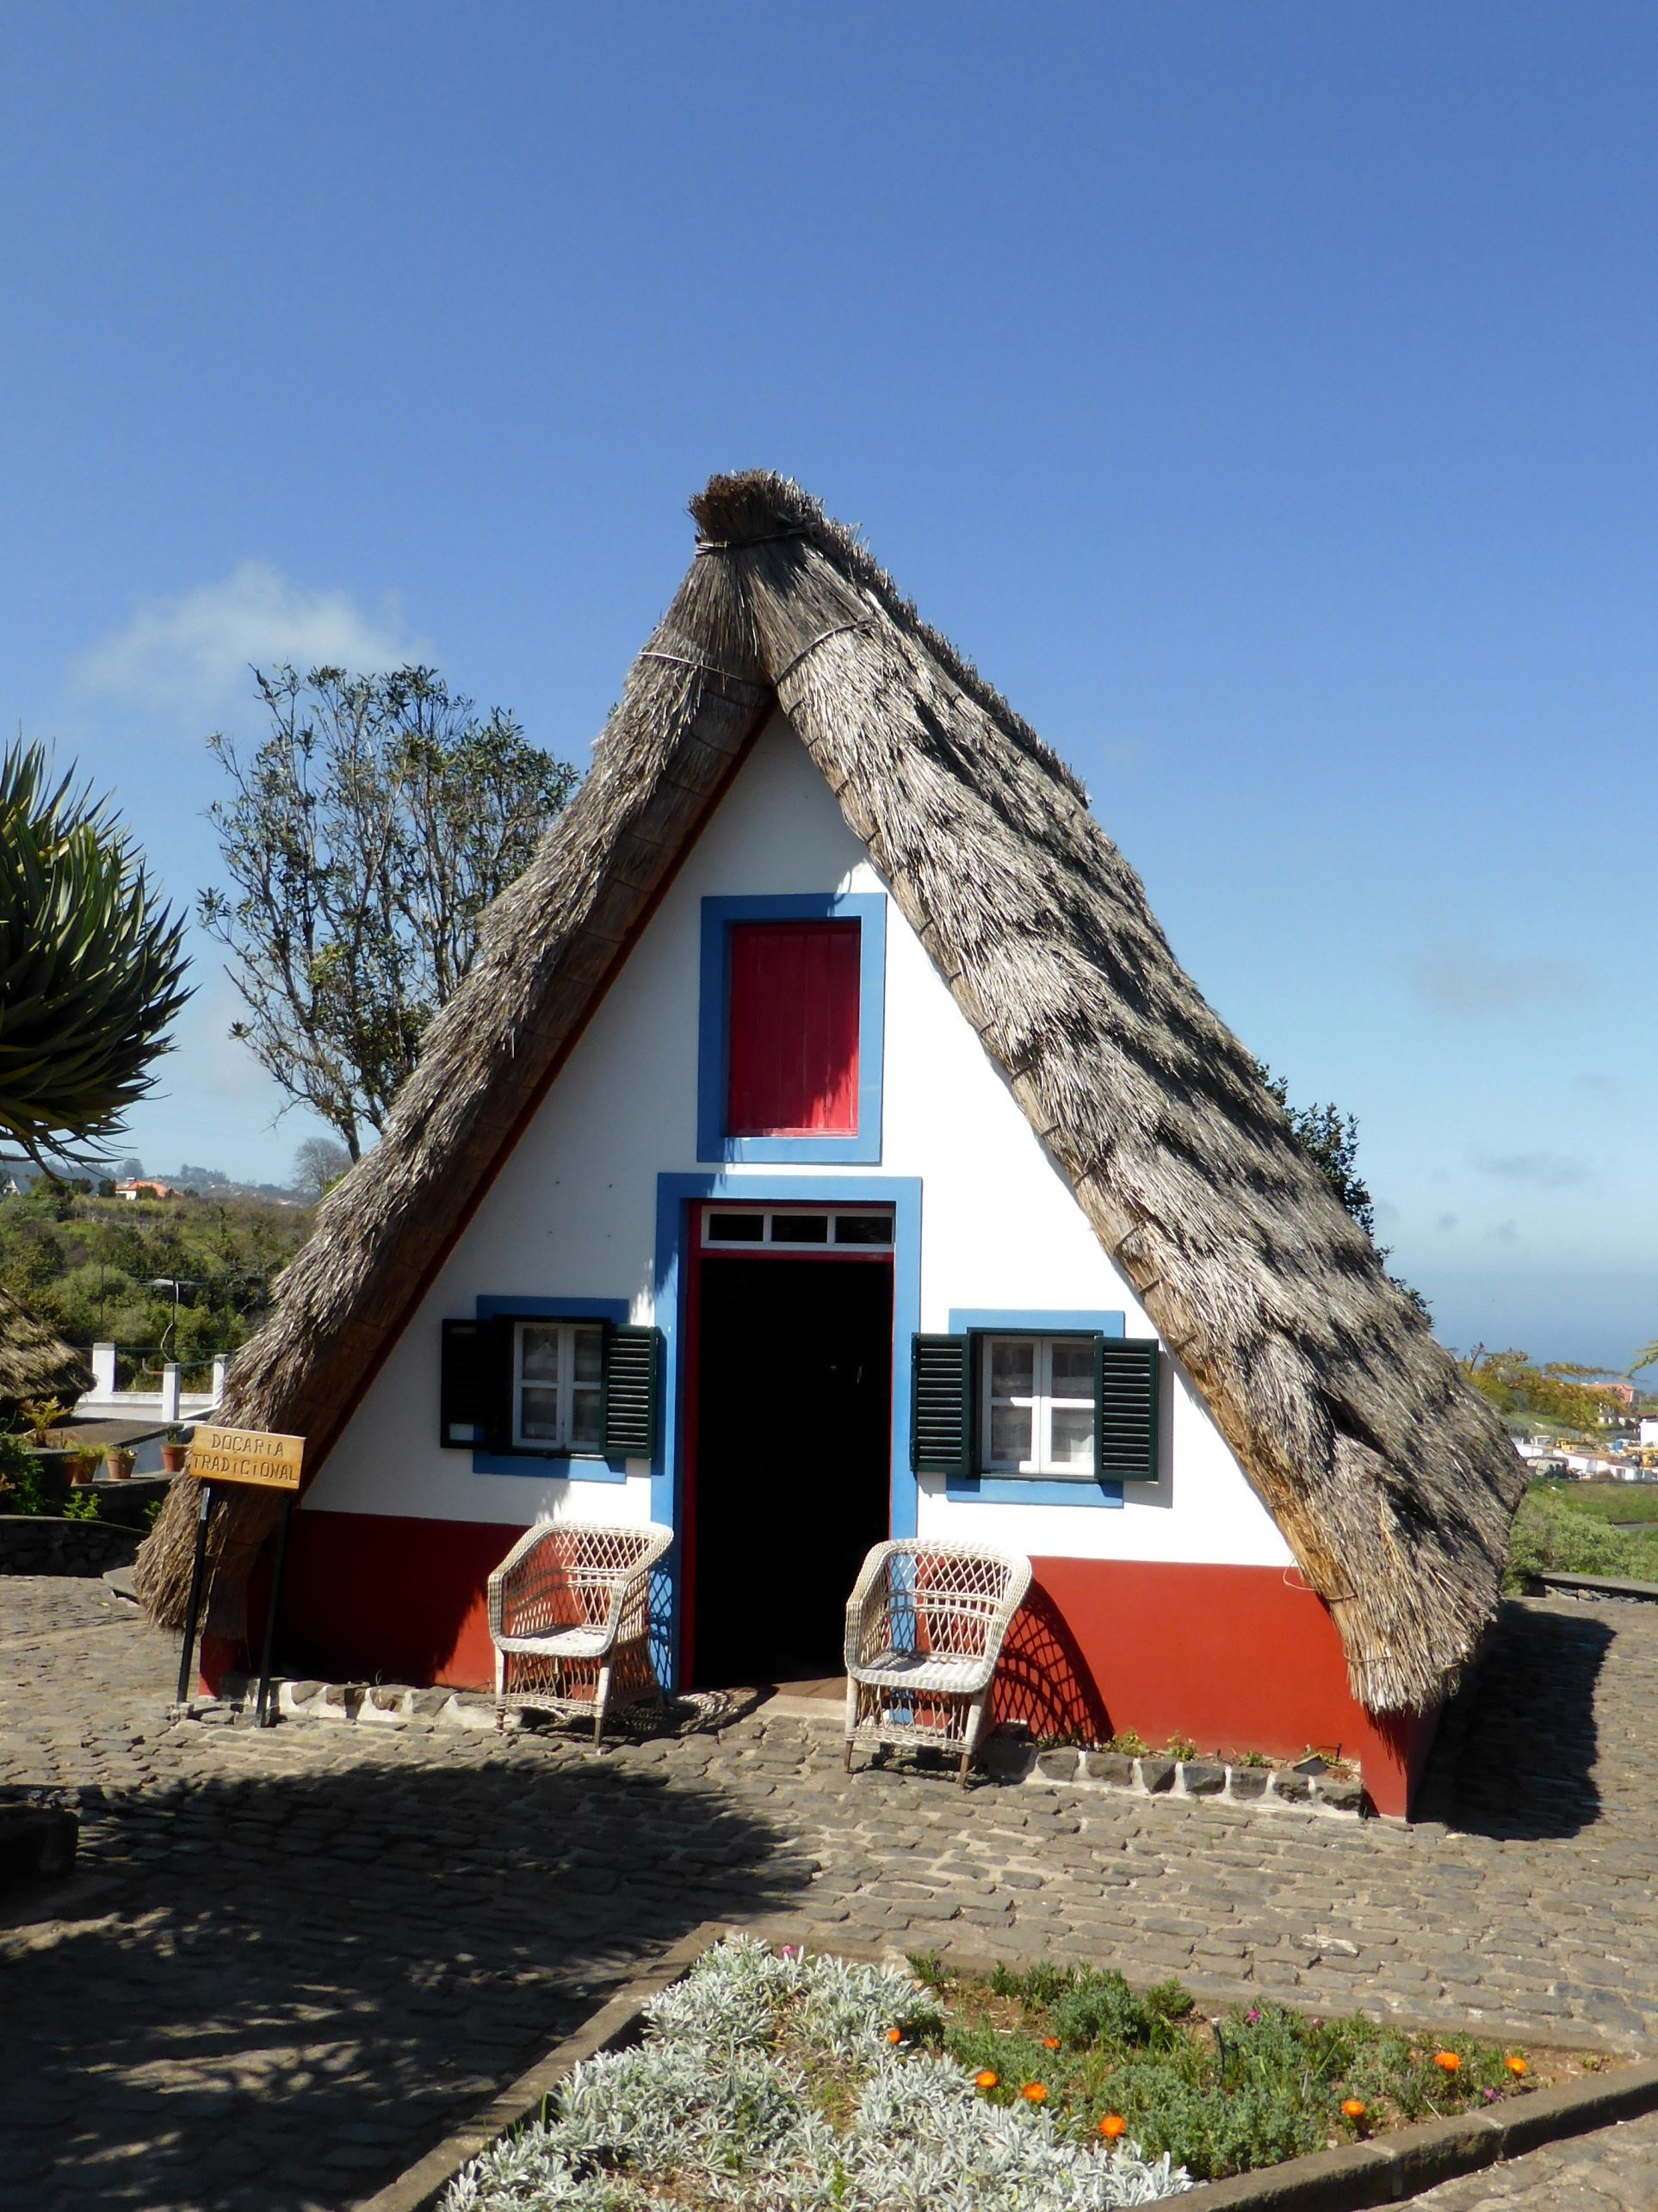 Traditional Triangular Houses With Thatched Roofs In Santana Madeira Island Http Www Freelancersontheroad Com Madeira Tours